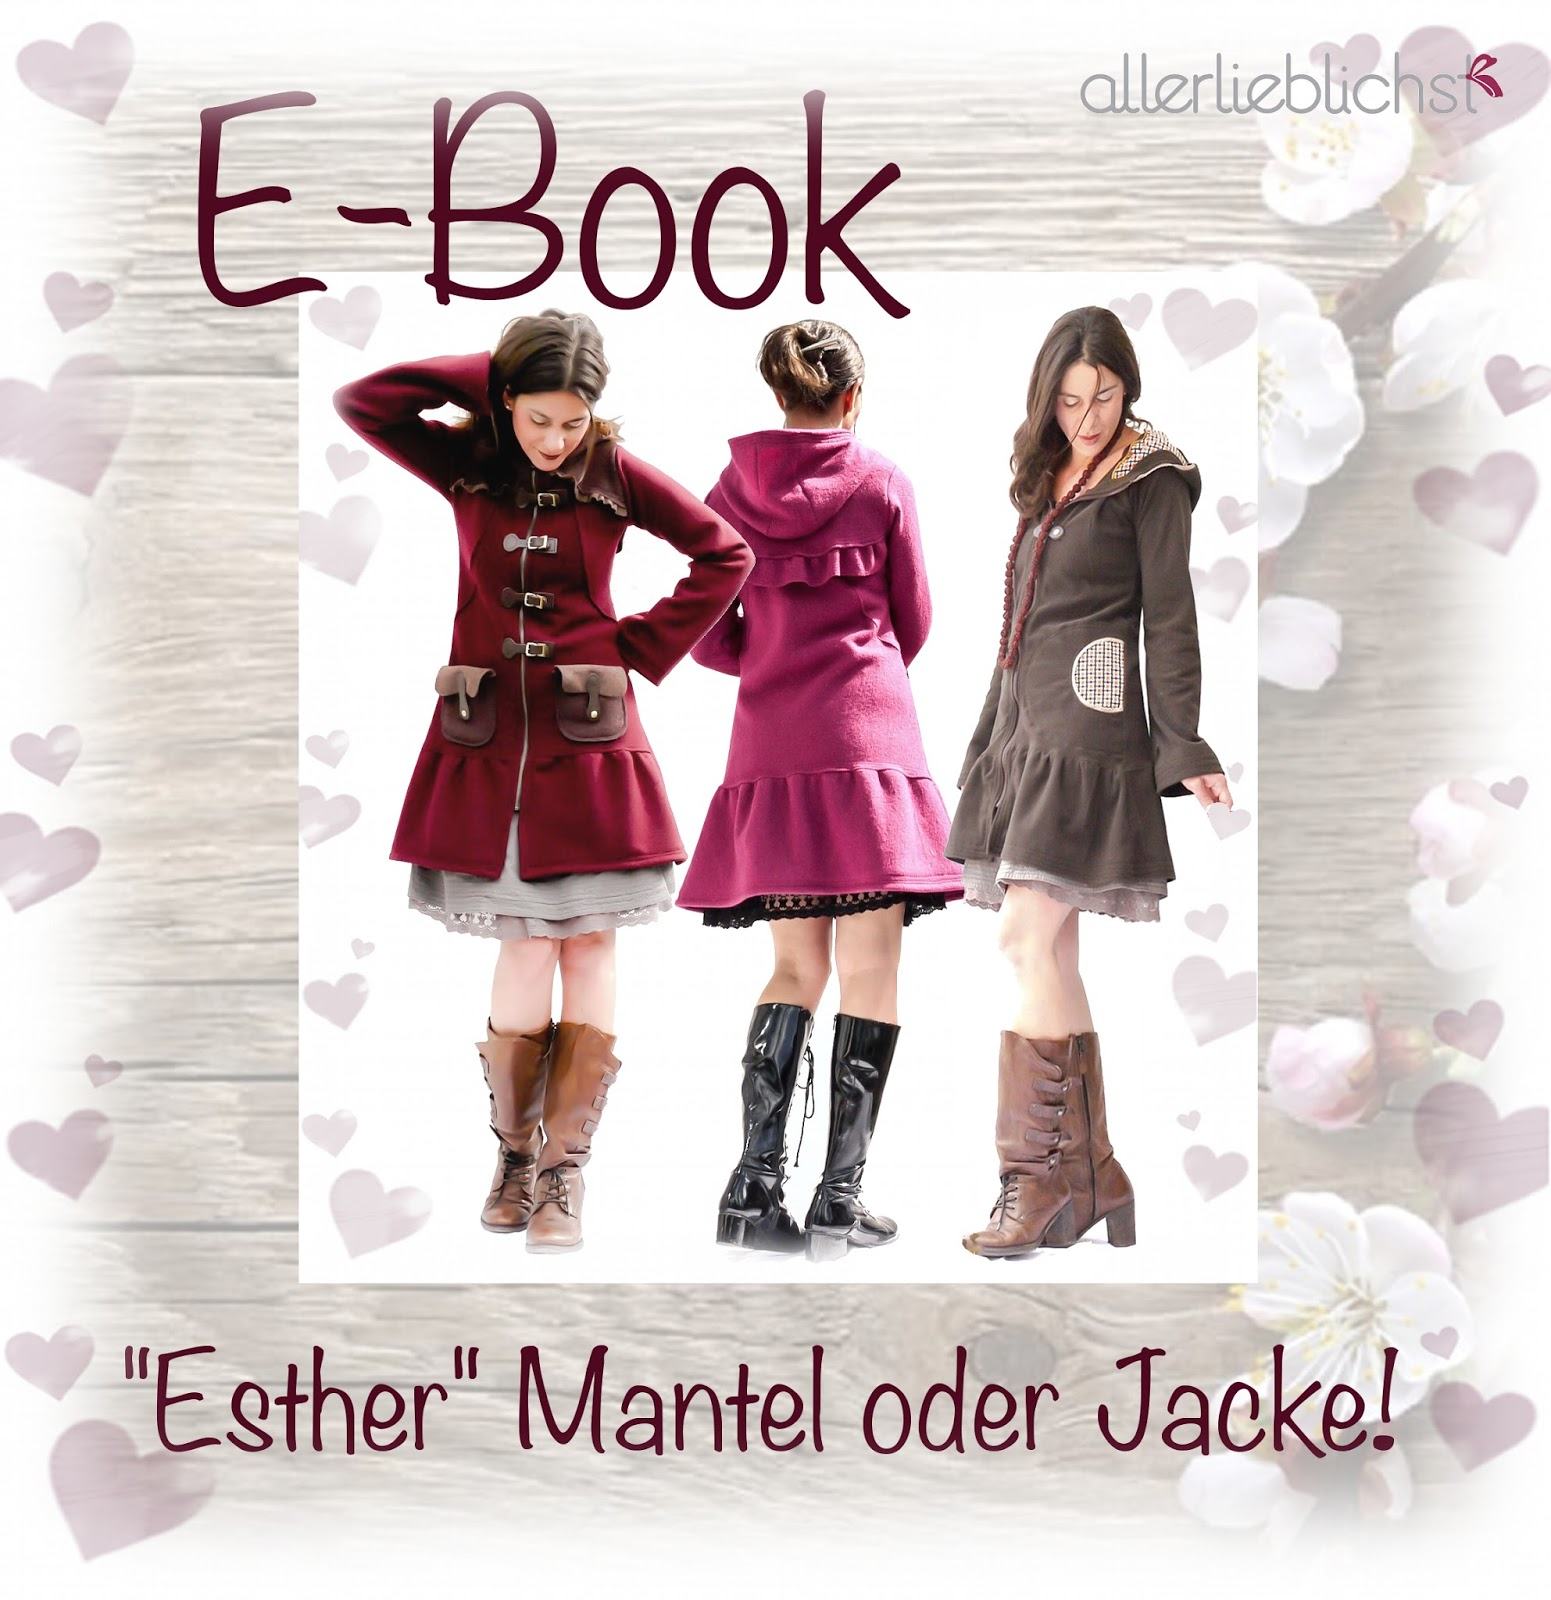 E-Book Esther!